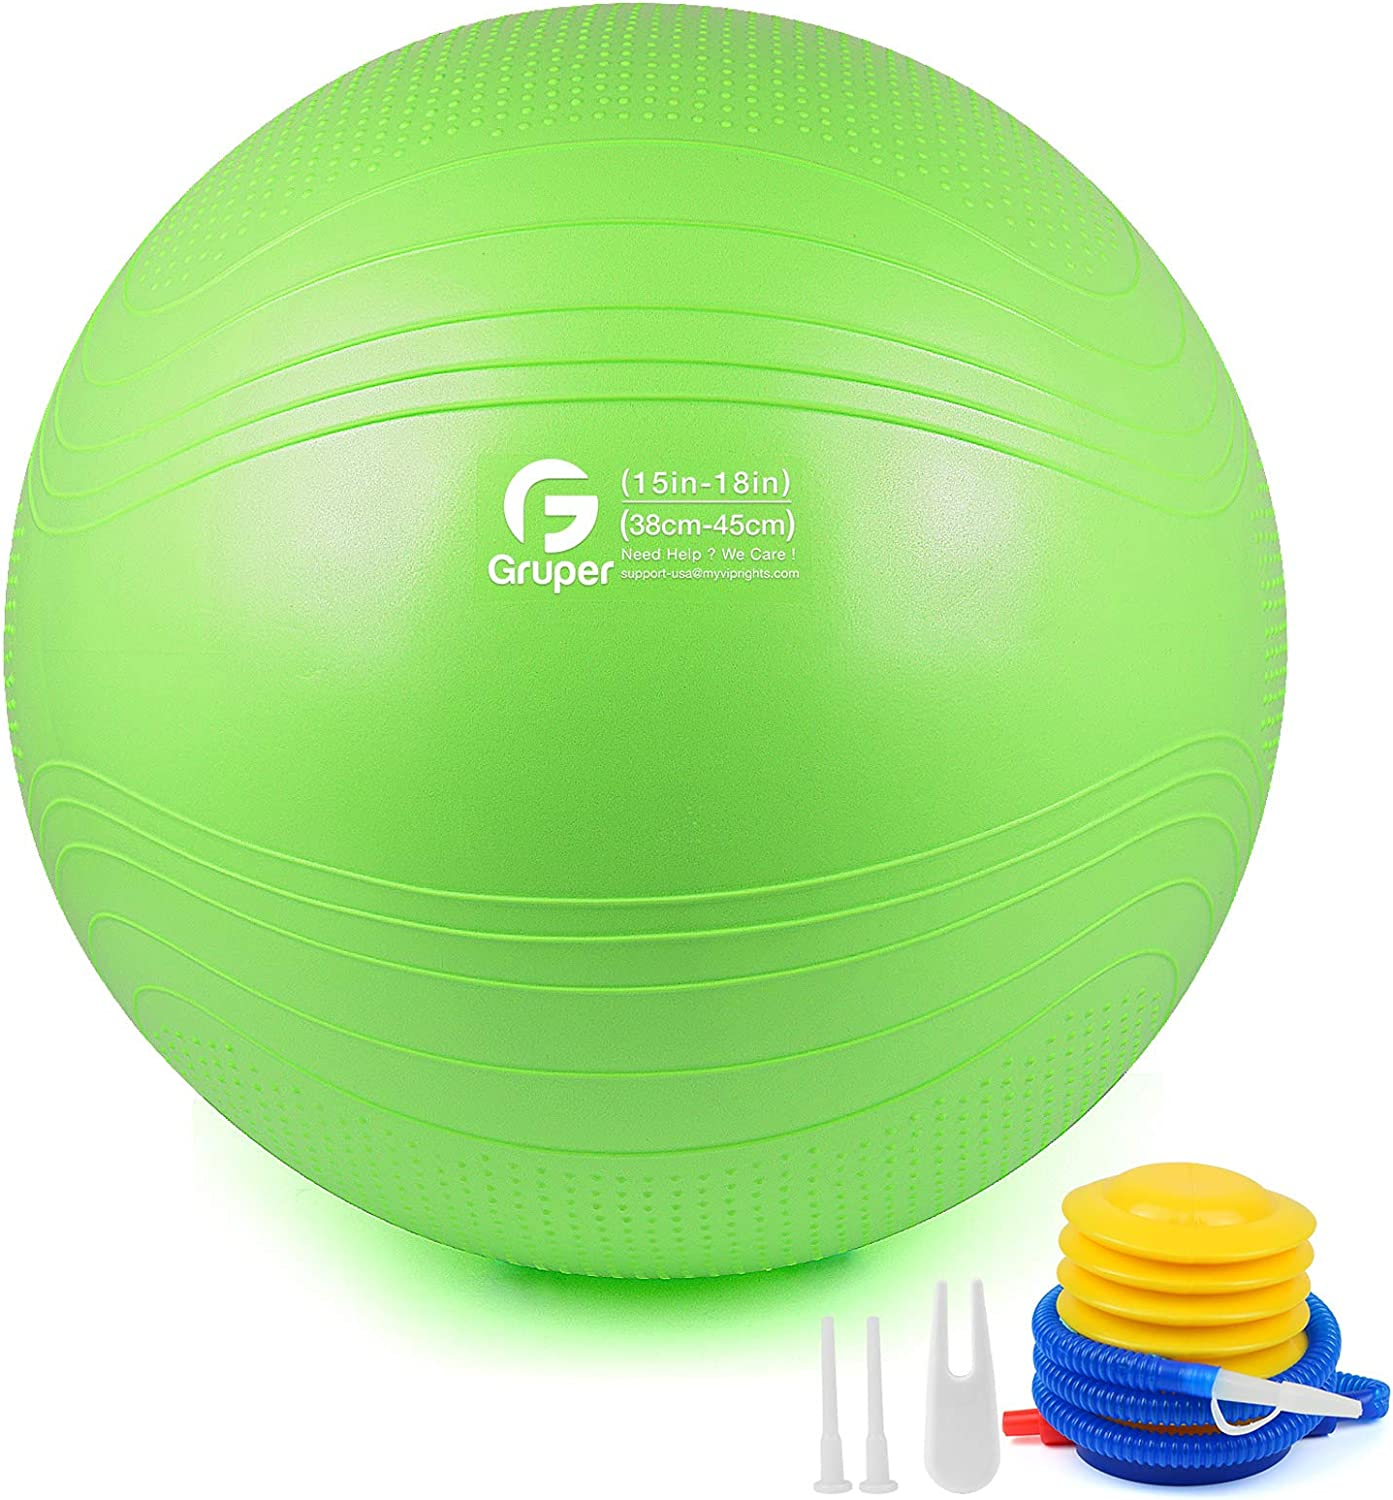 Gruper Yoga Ball,45-75cm Extra Thick Exercise Ball for Workout Fitness Balance - Anti Burst Chair for Home and Office Desk-Includes Hand Pump & Workout Guide Access